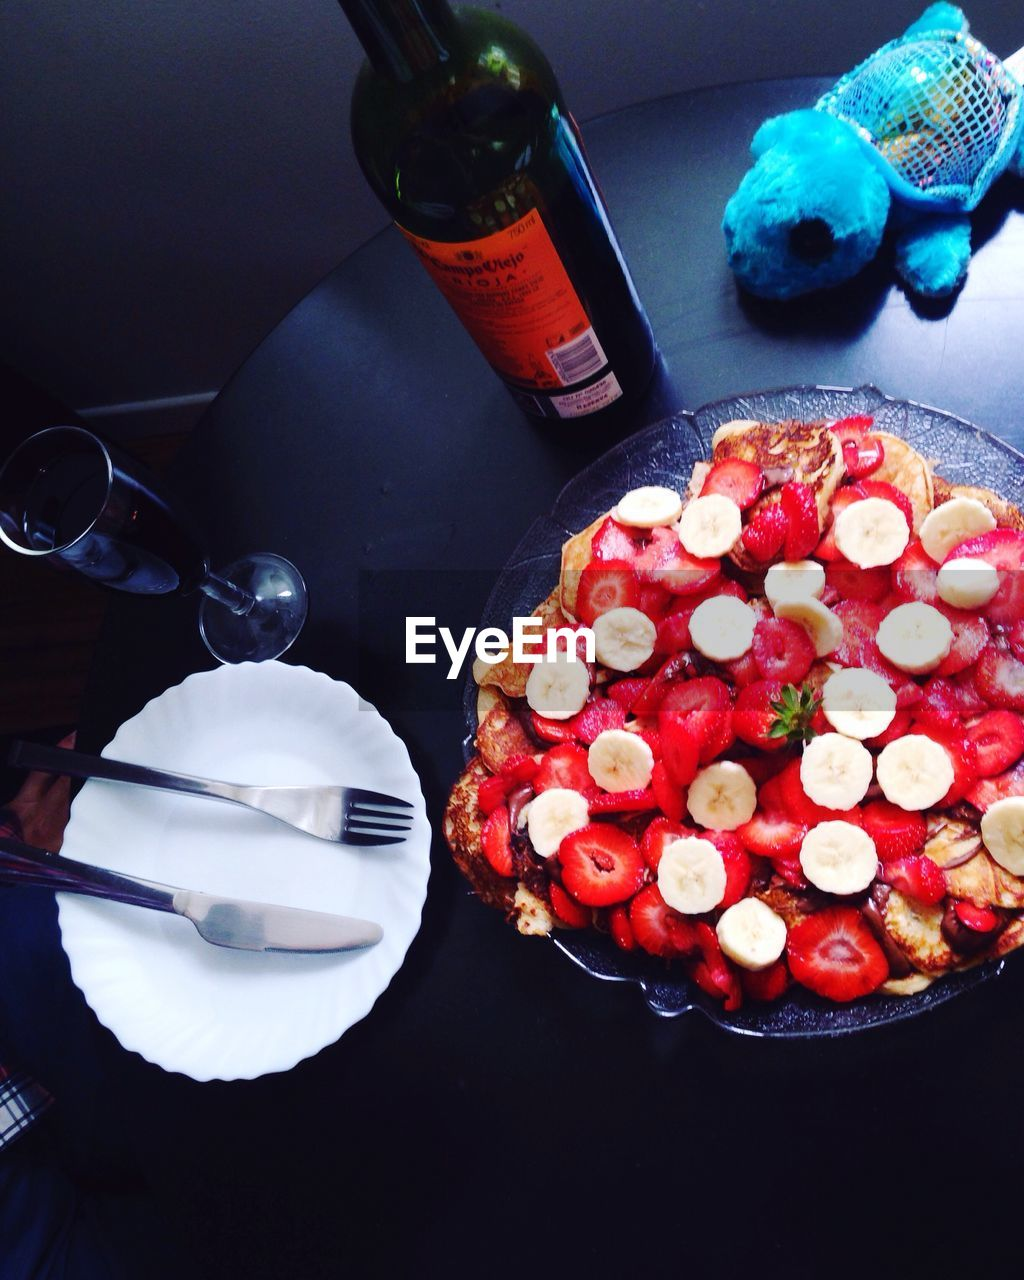 food and drink, table, food, freshness, indulgence, high angle view, sweet food, temptation, plate, no people, bottle, indoors, ready-to-eat, unhealthy eating, directly above, dessert, red, close-up, day